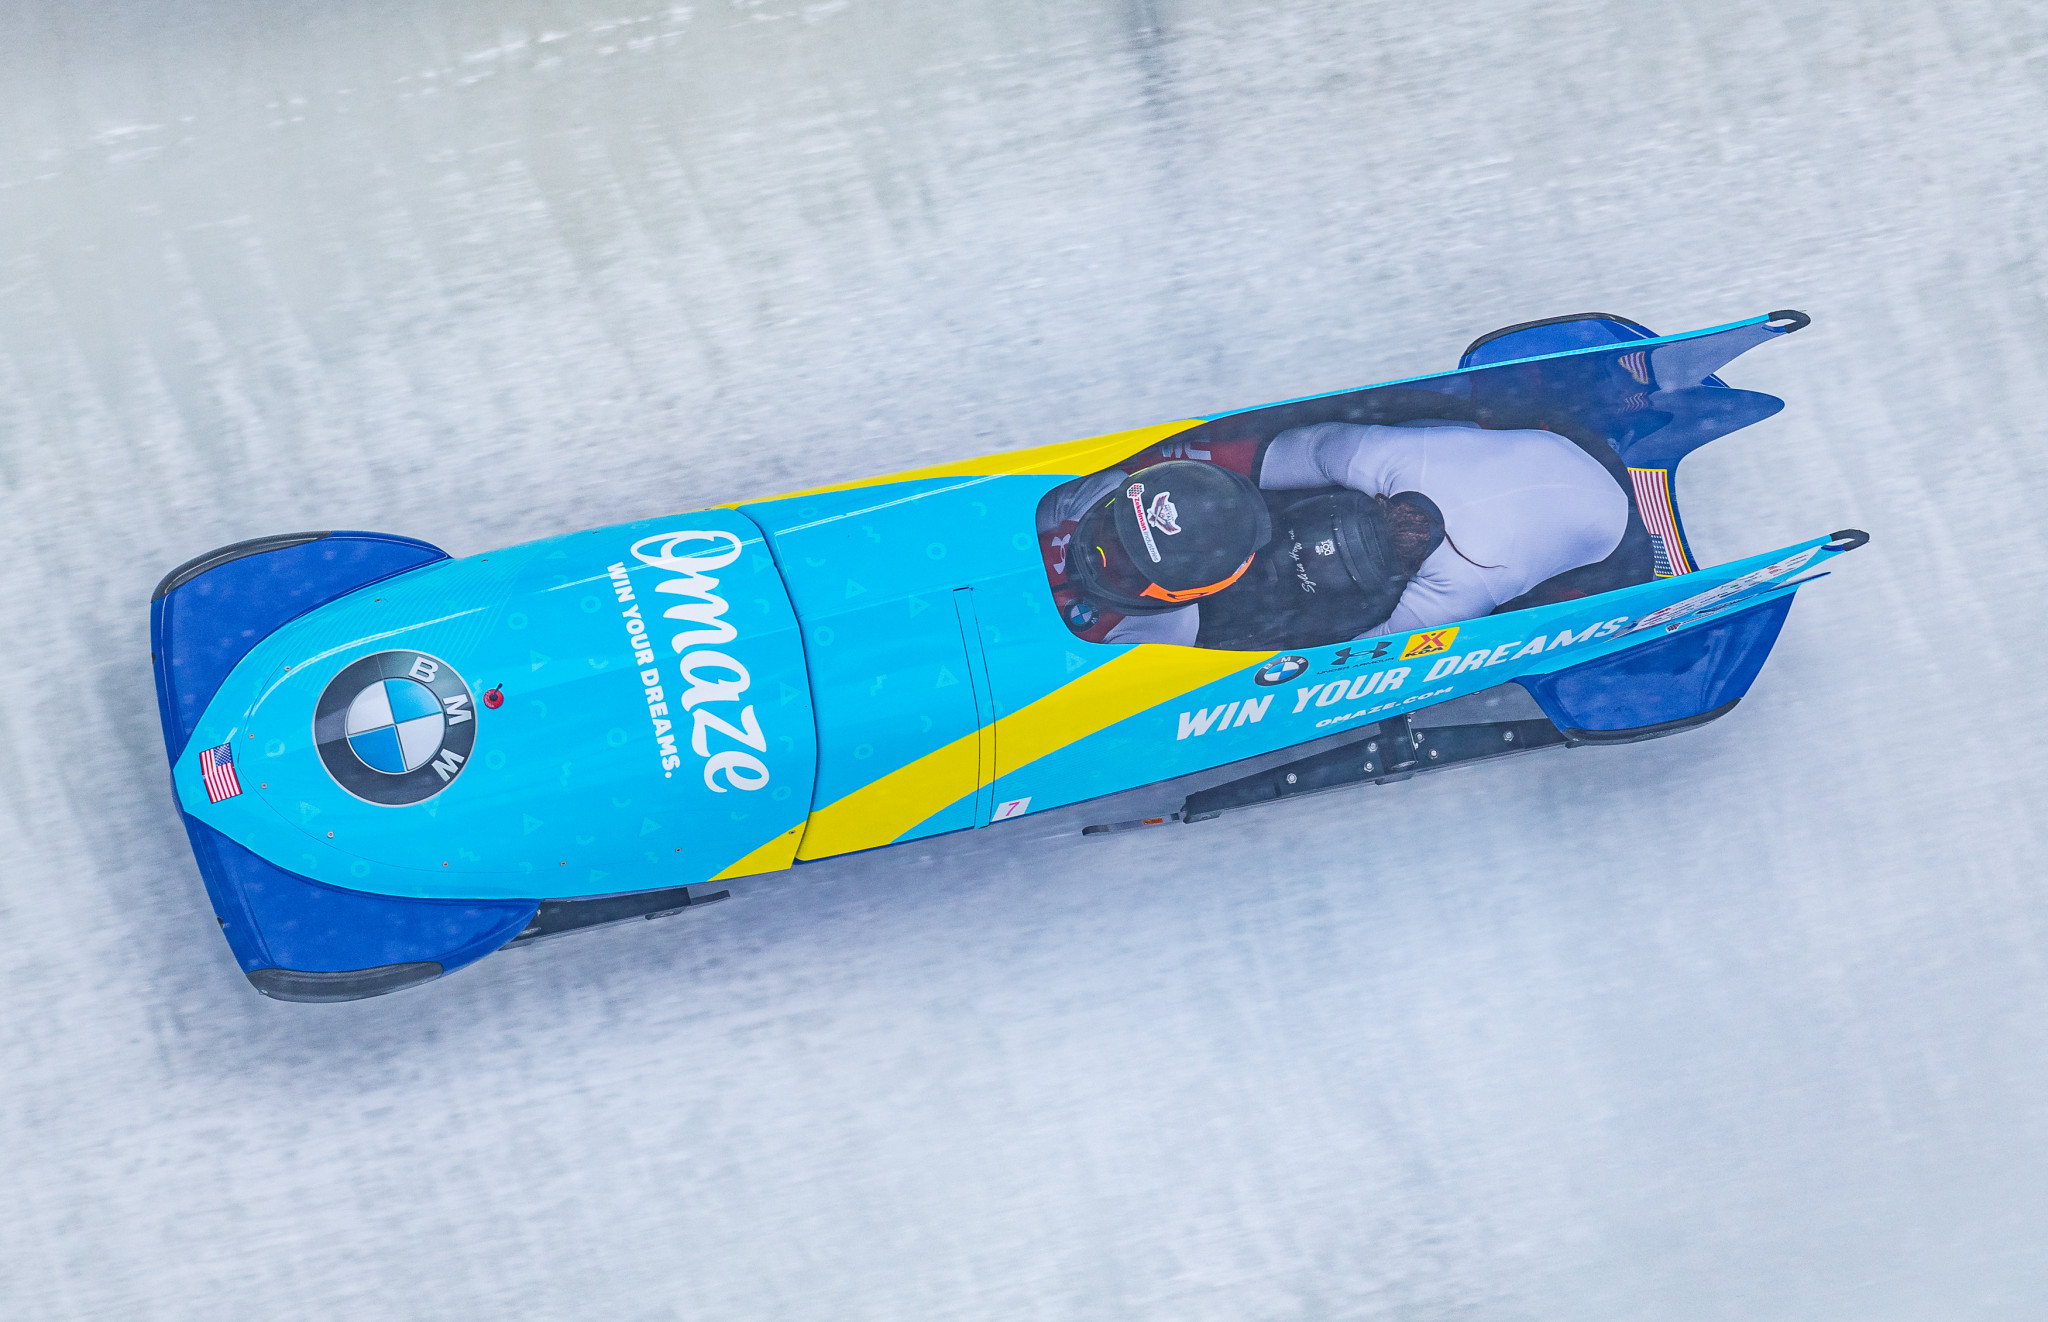 The United States will return to the IBSF World Cup in Winterberg ©Getty Images